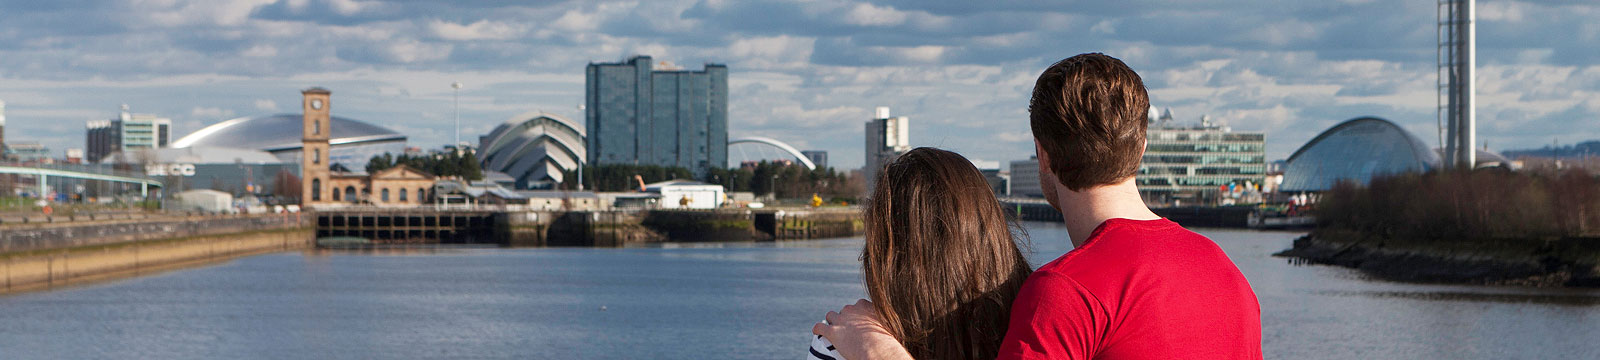 Couple overlooking Glasgow